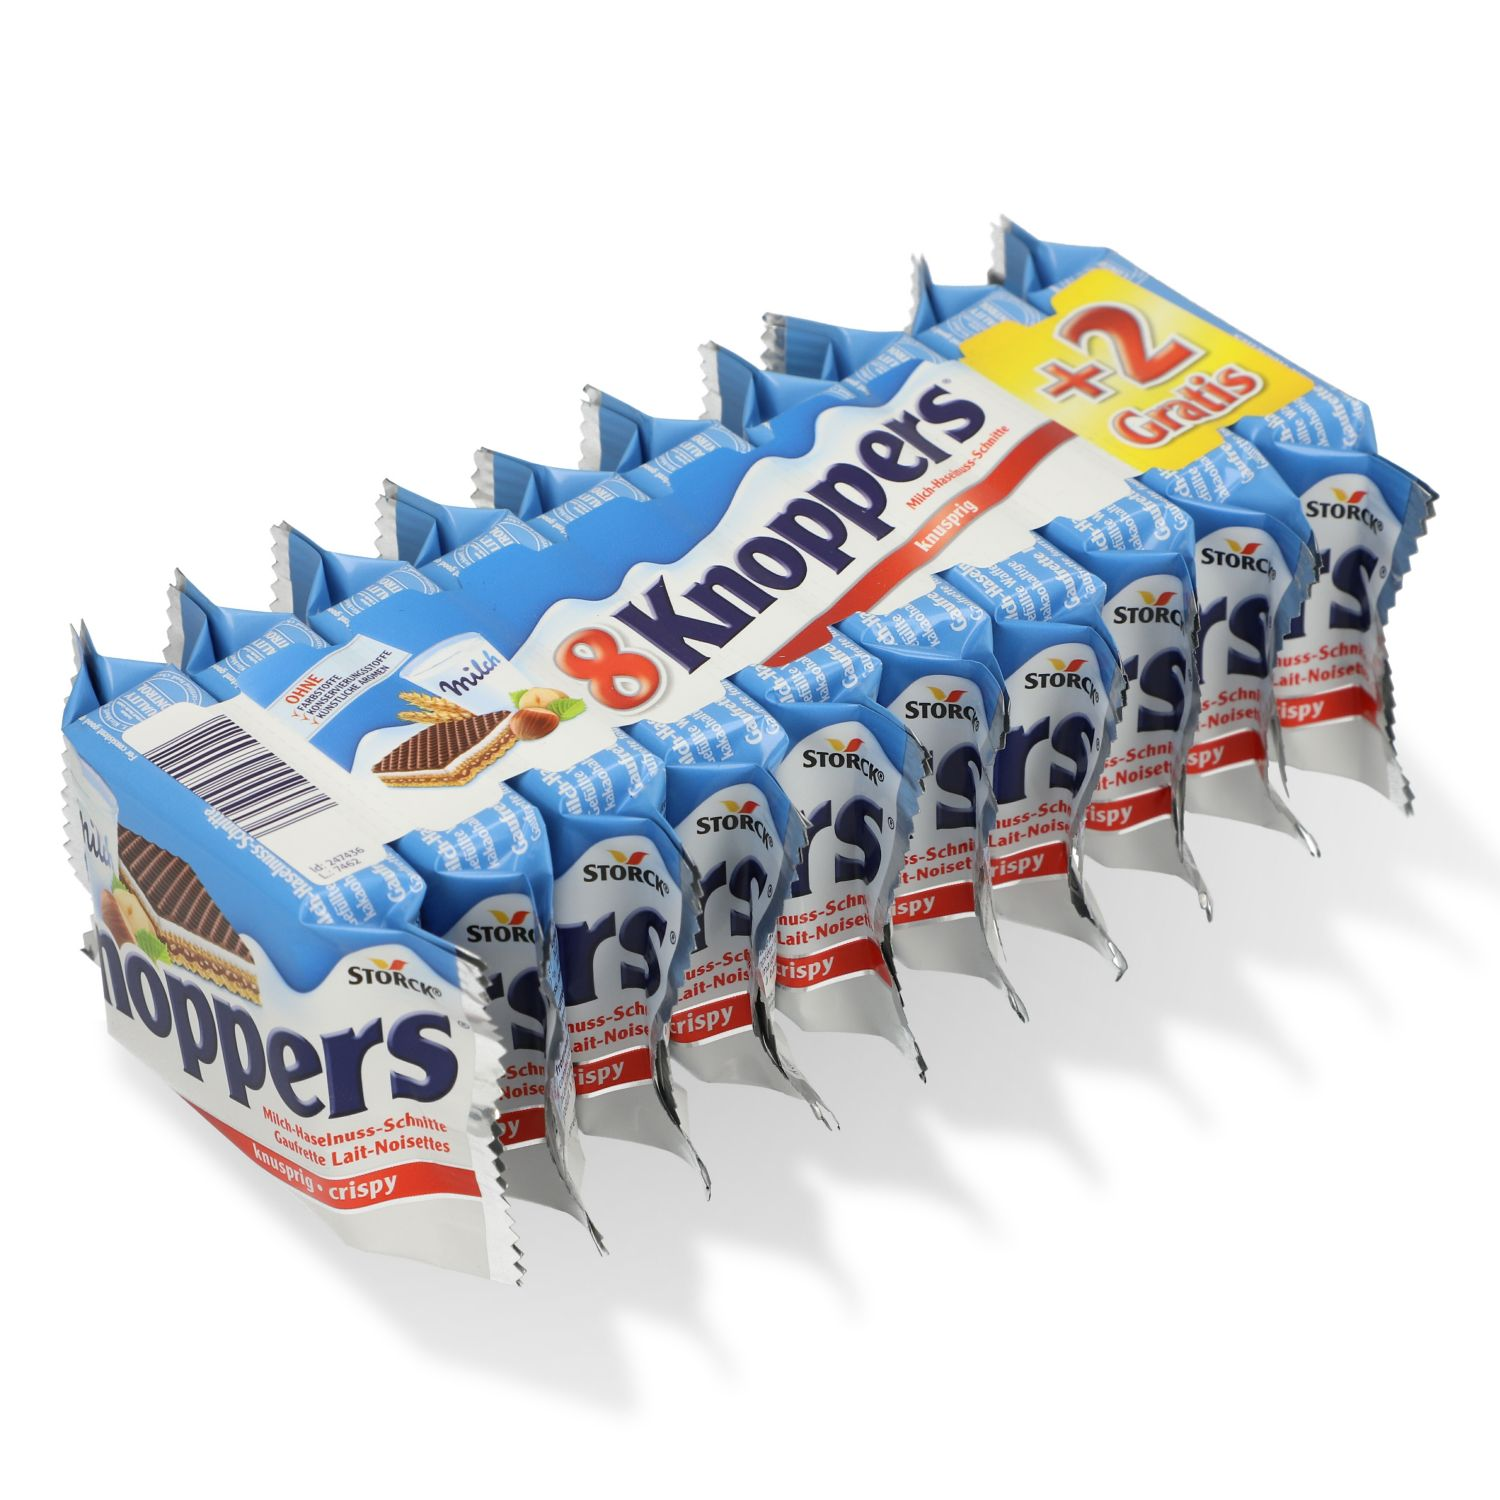 Storck Knoppers Milch-Haselnuss-Schnitte 8 Stk.